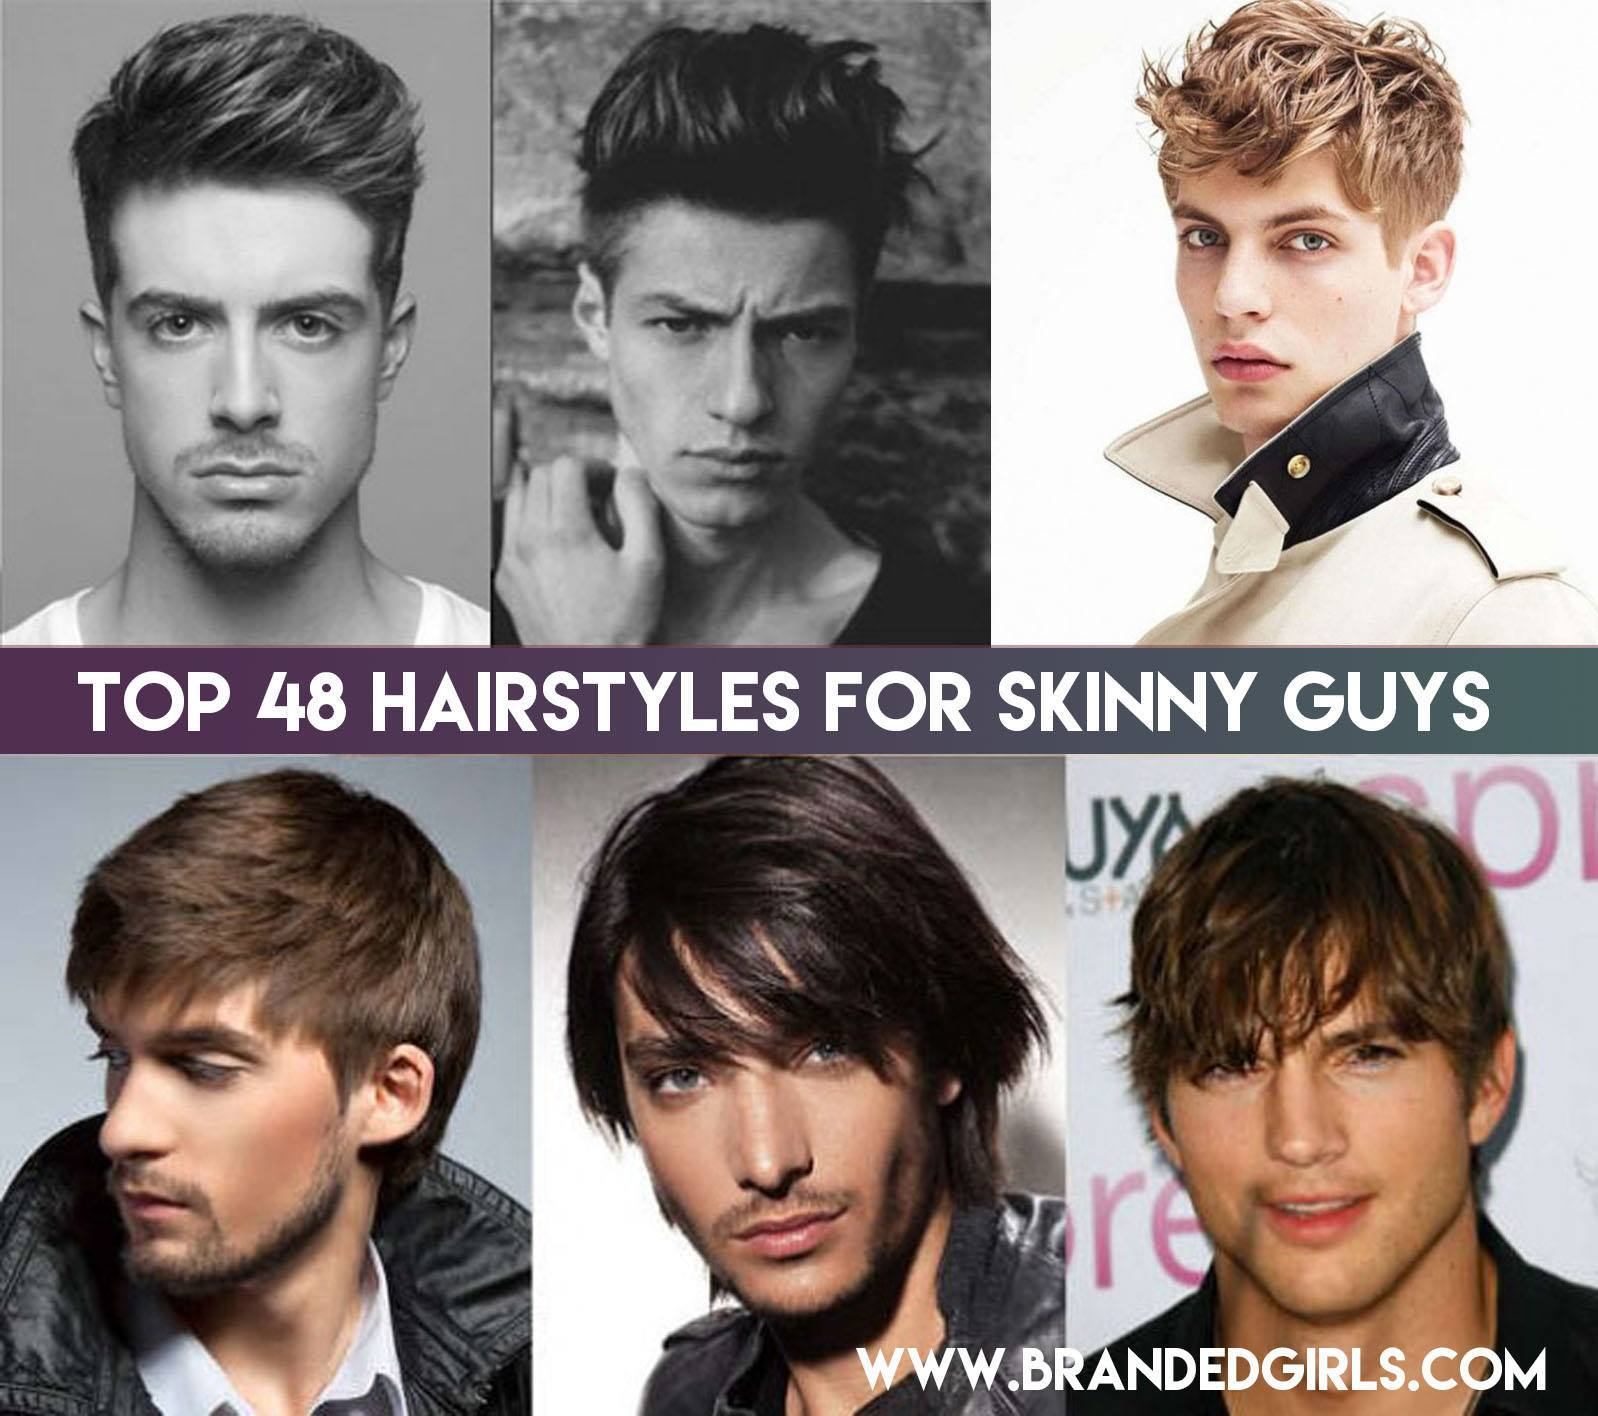 48 New Hairstyles For Skinny Boys Trending These Days